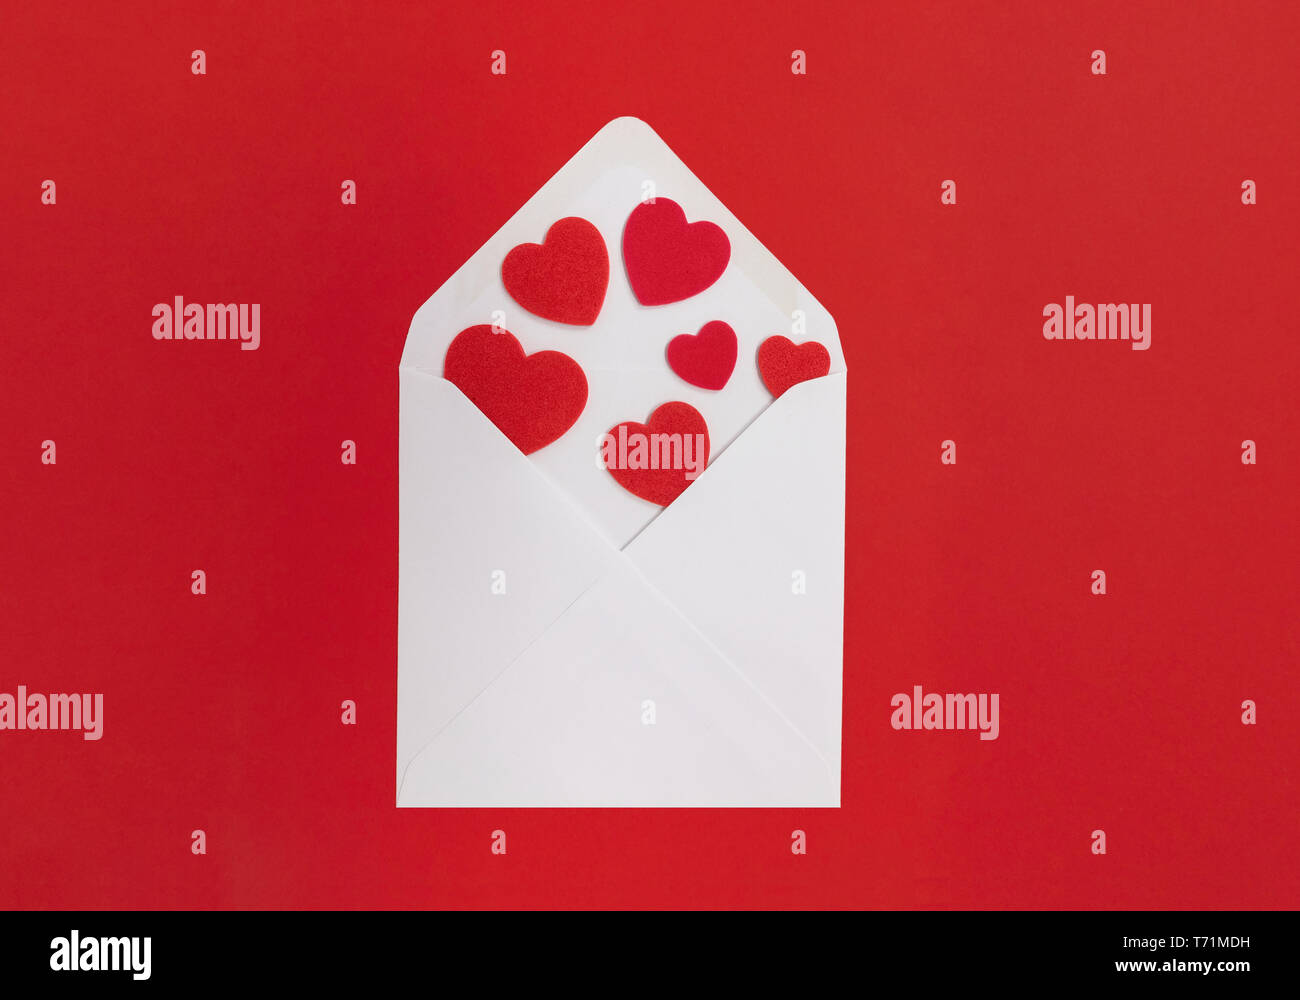 Love letter concept. White envelope with hearts spilling out, with a red background. - Stock Image